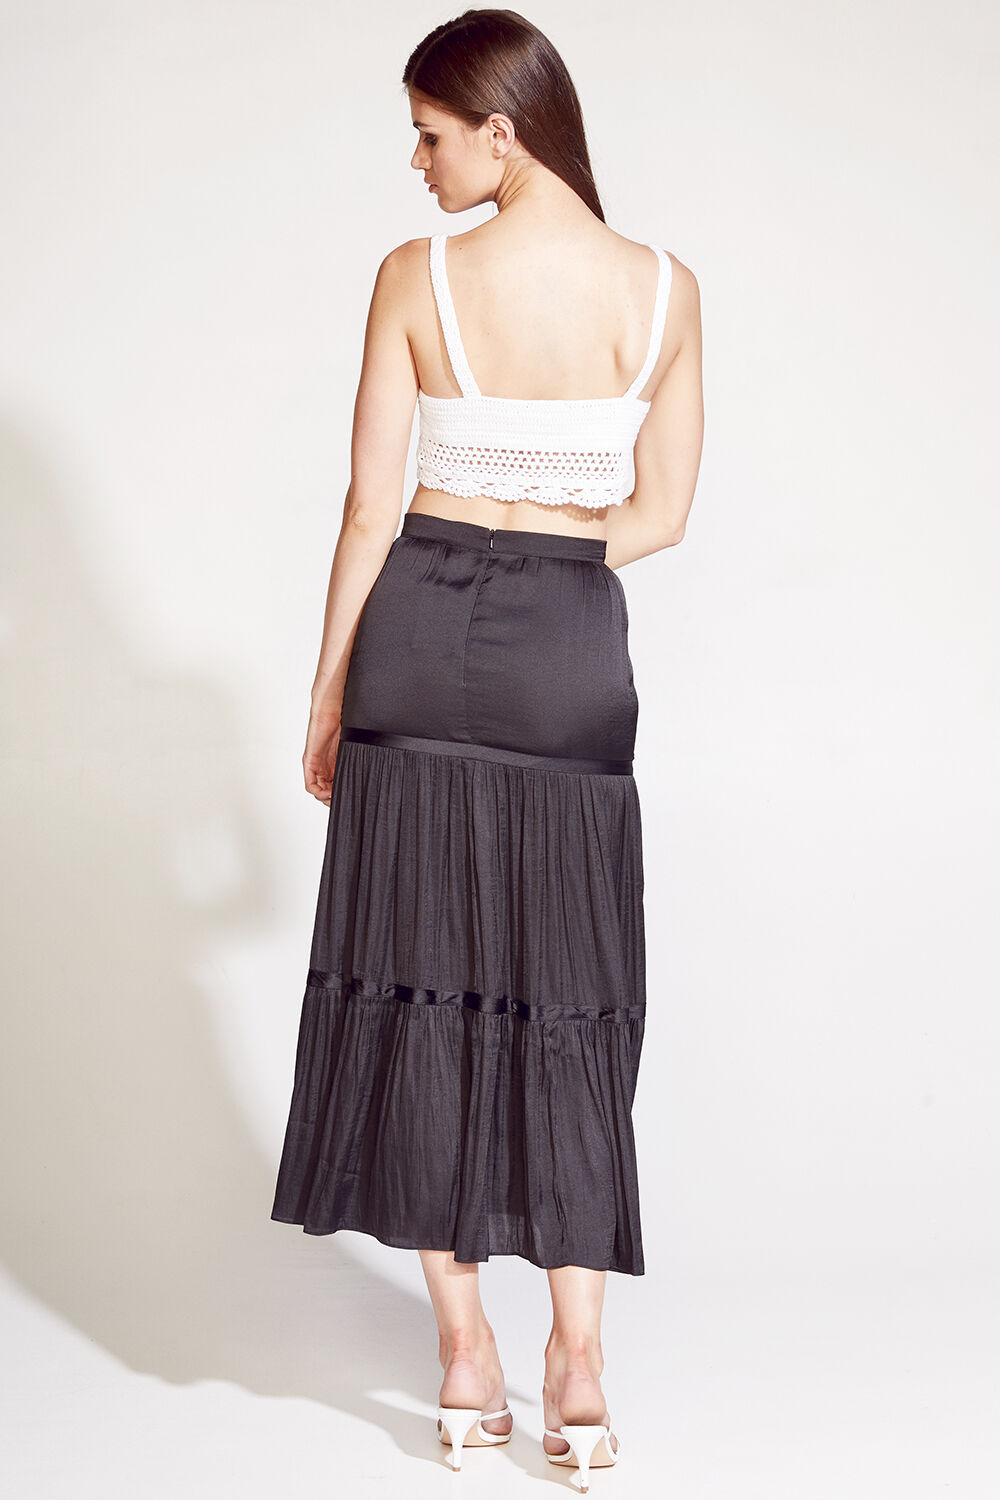 TAYLA TIER MAXI SKIRT in colour CAVIAR